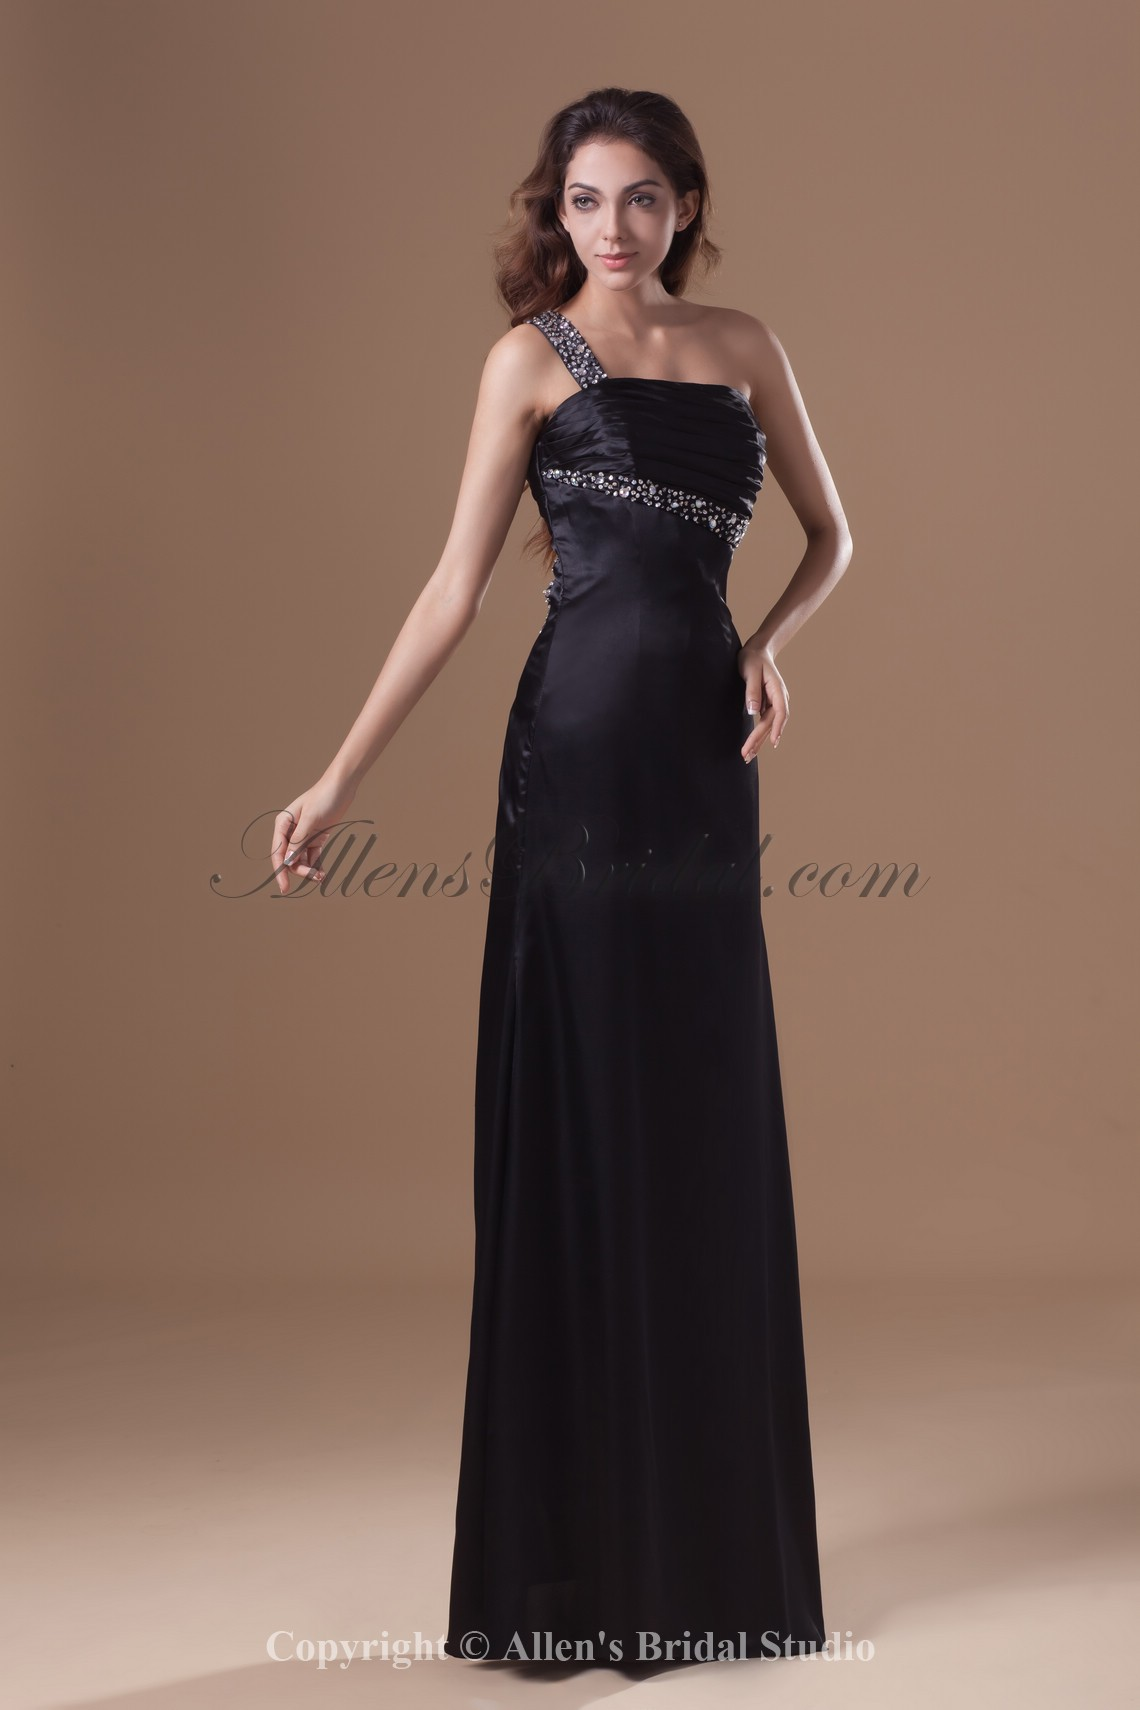 /588-4713/satin-one-shoulder-floor-length-sheath-crystals-prom-dress.jpg